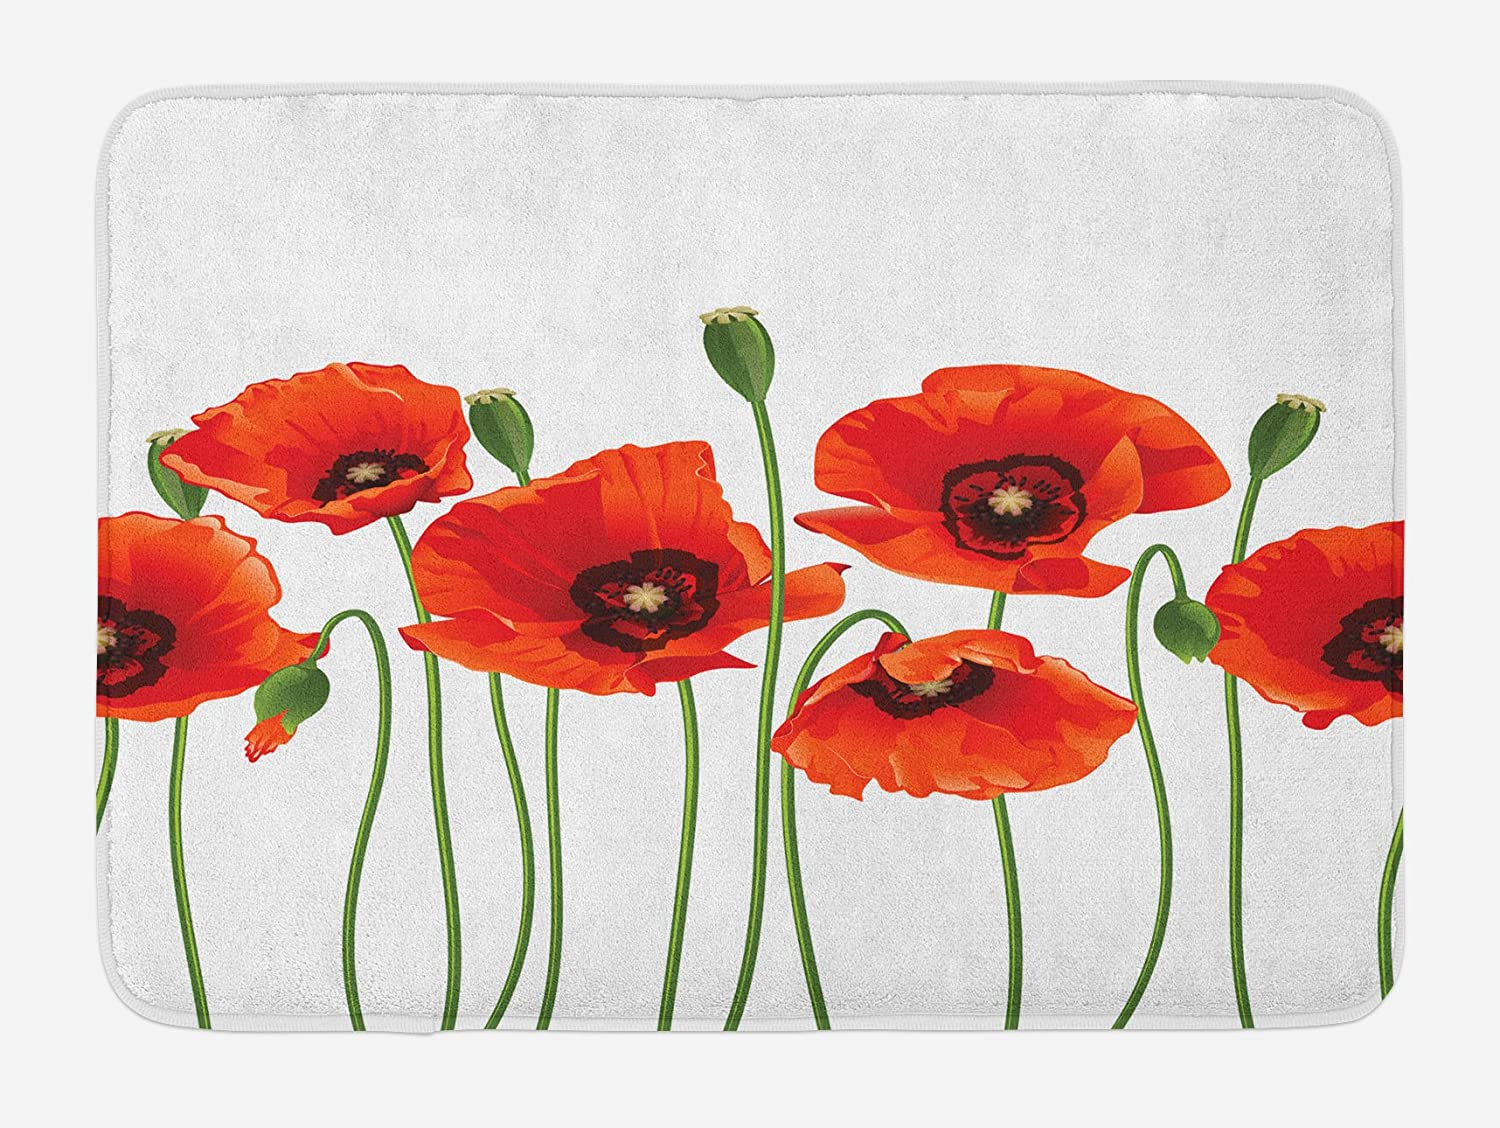 Ambesonne Floral Bath Mat, Poppies of Spring Season Pastoral Flowers Botany Bouquet Field Nature Theme Art, Plush Bathroom Decor Mat with Non Slip Backing, 29.5